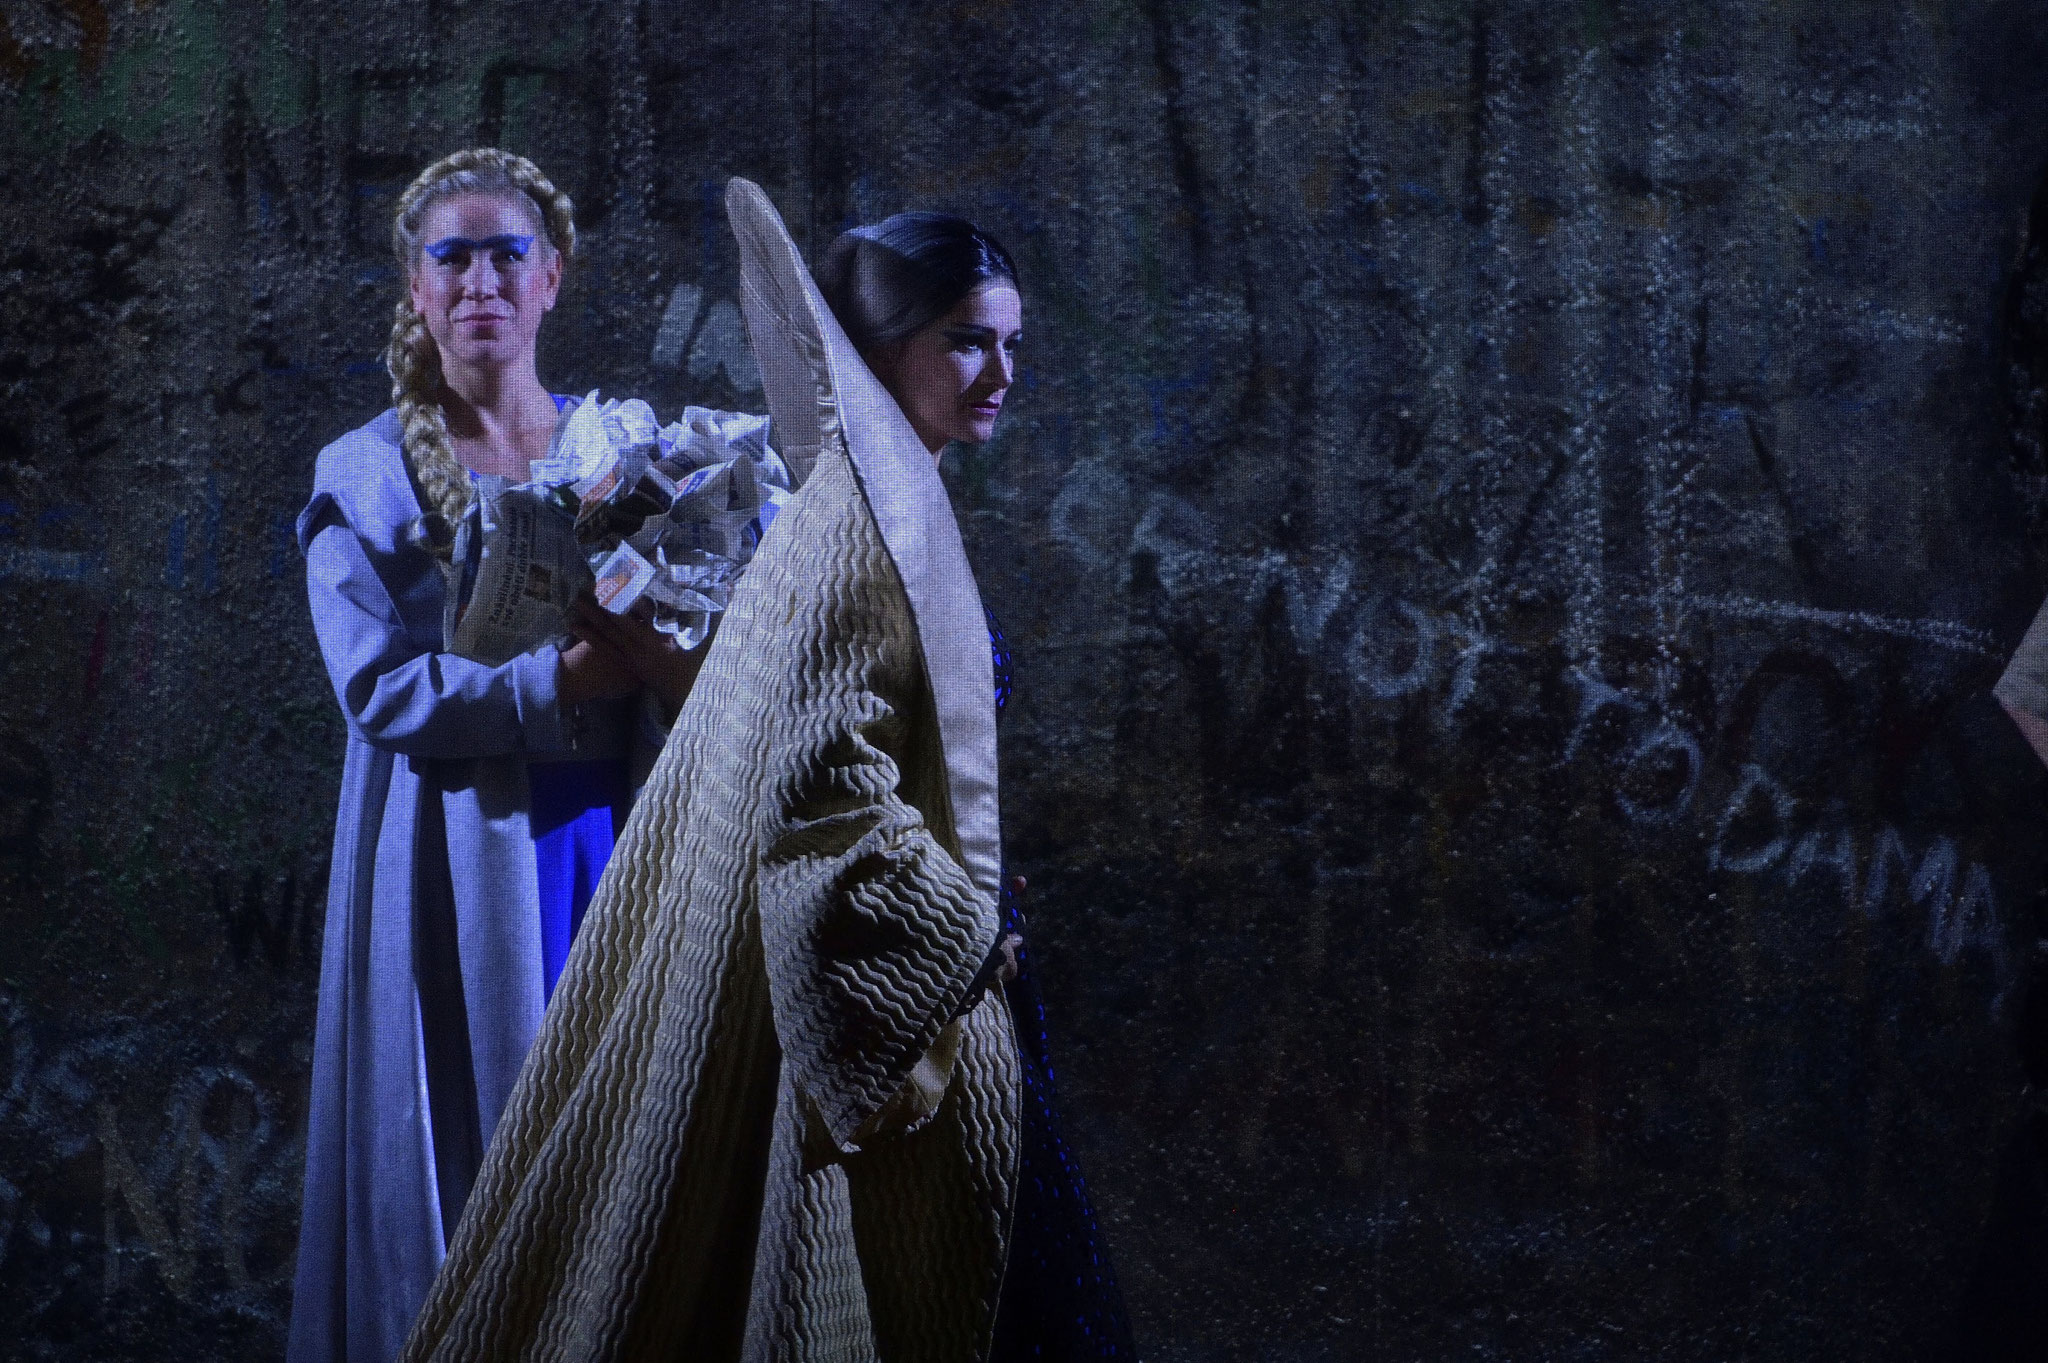 Ifigenie in Aulis/ Clytemnestra, National Moravian-Silesian Theatre